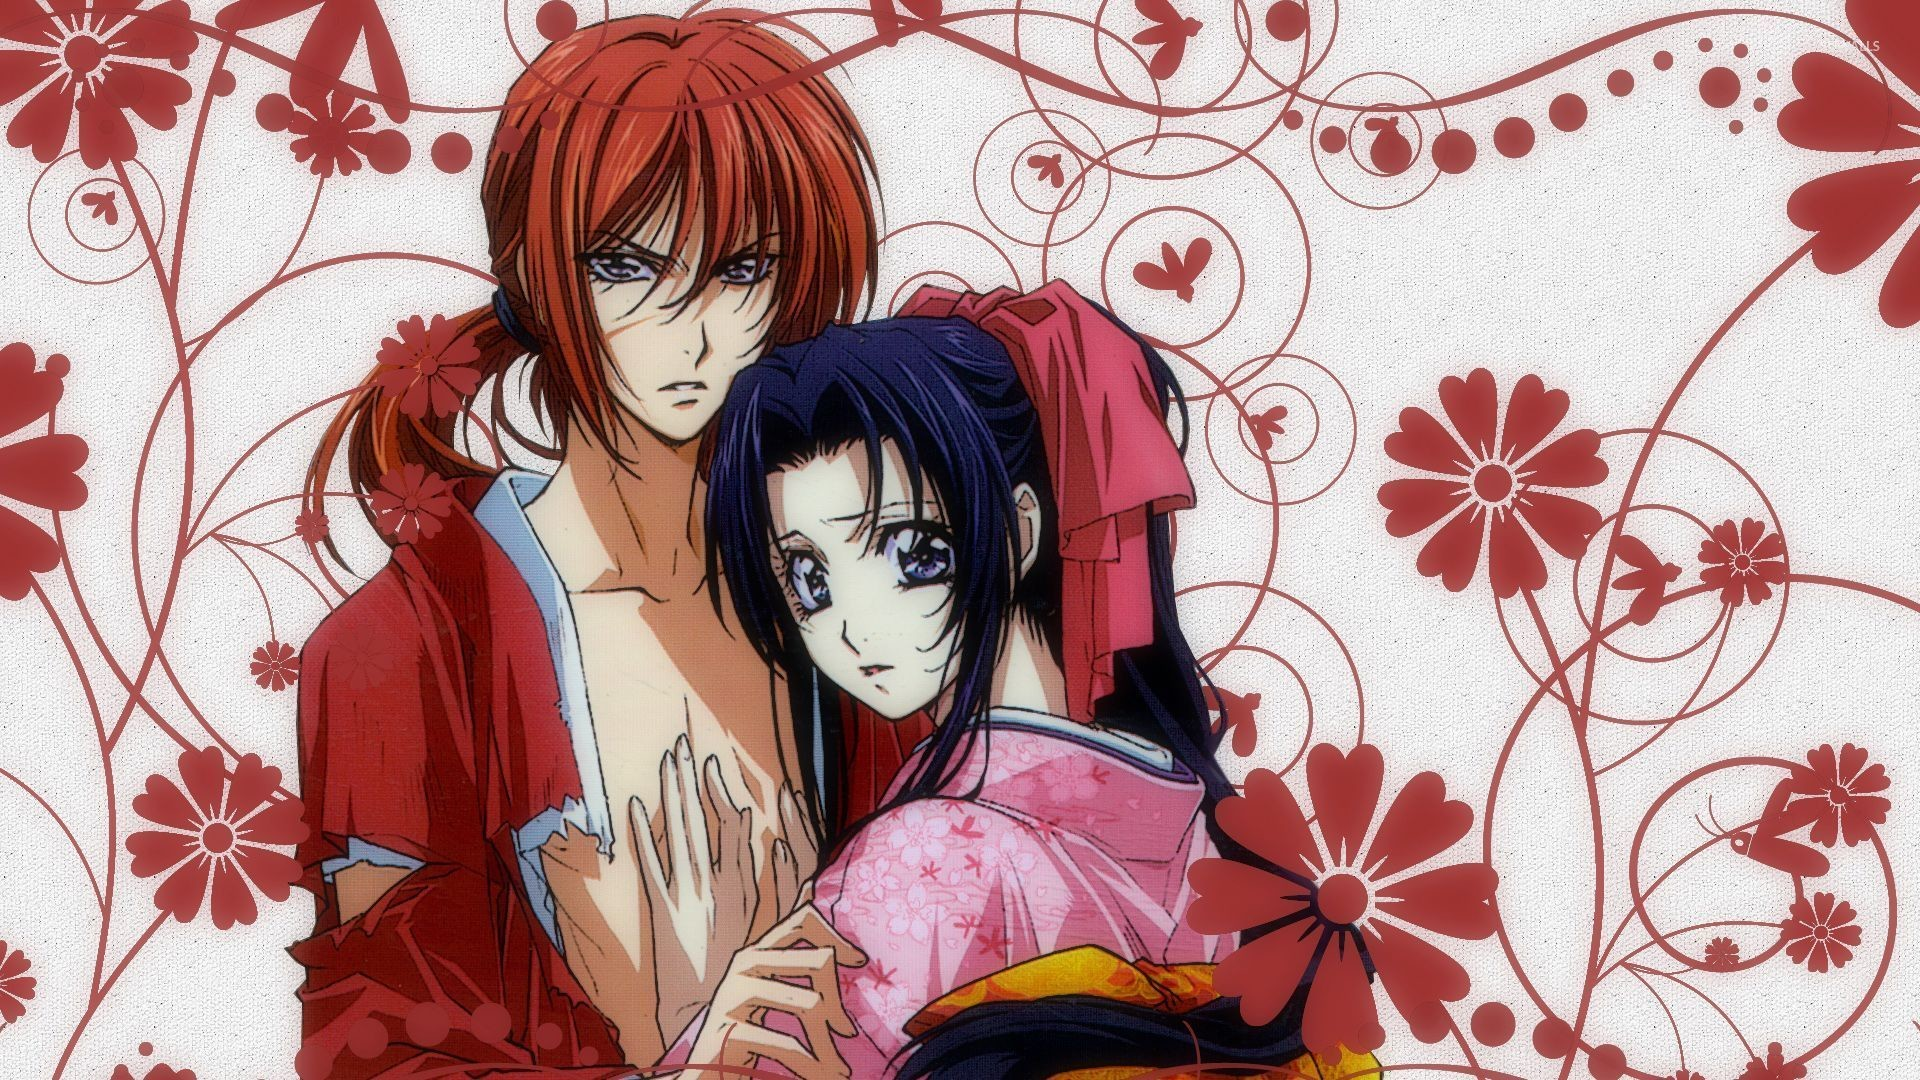 Rurouni kenshin wallpaper hd 52 images 1920x1200 redhead anime katana rurouni kenshin himura kenshin wallpapers hd desktop and mobile backgrounds voltagebd Gallery